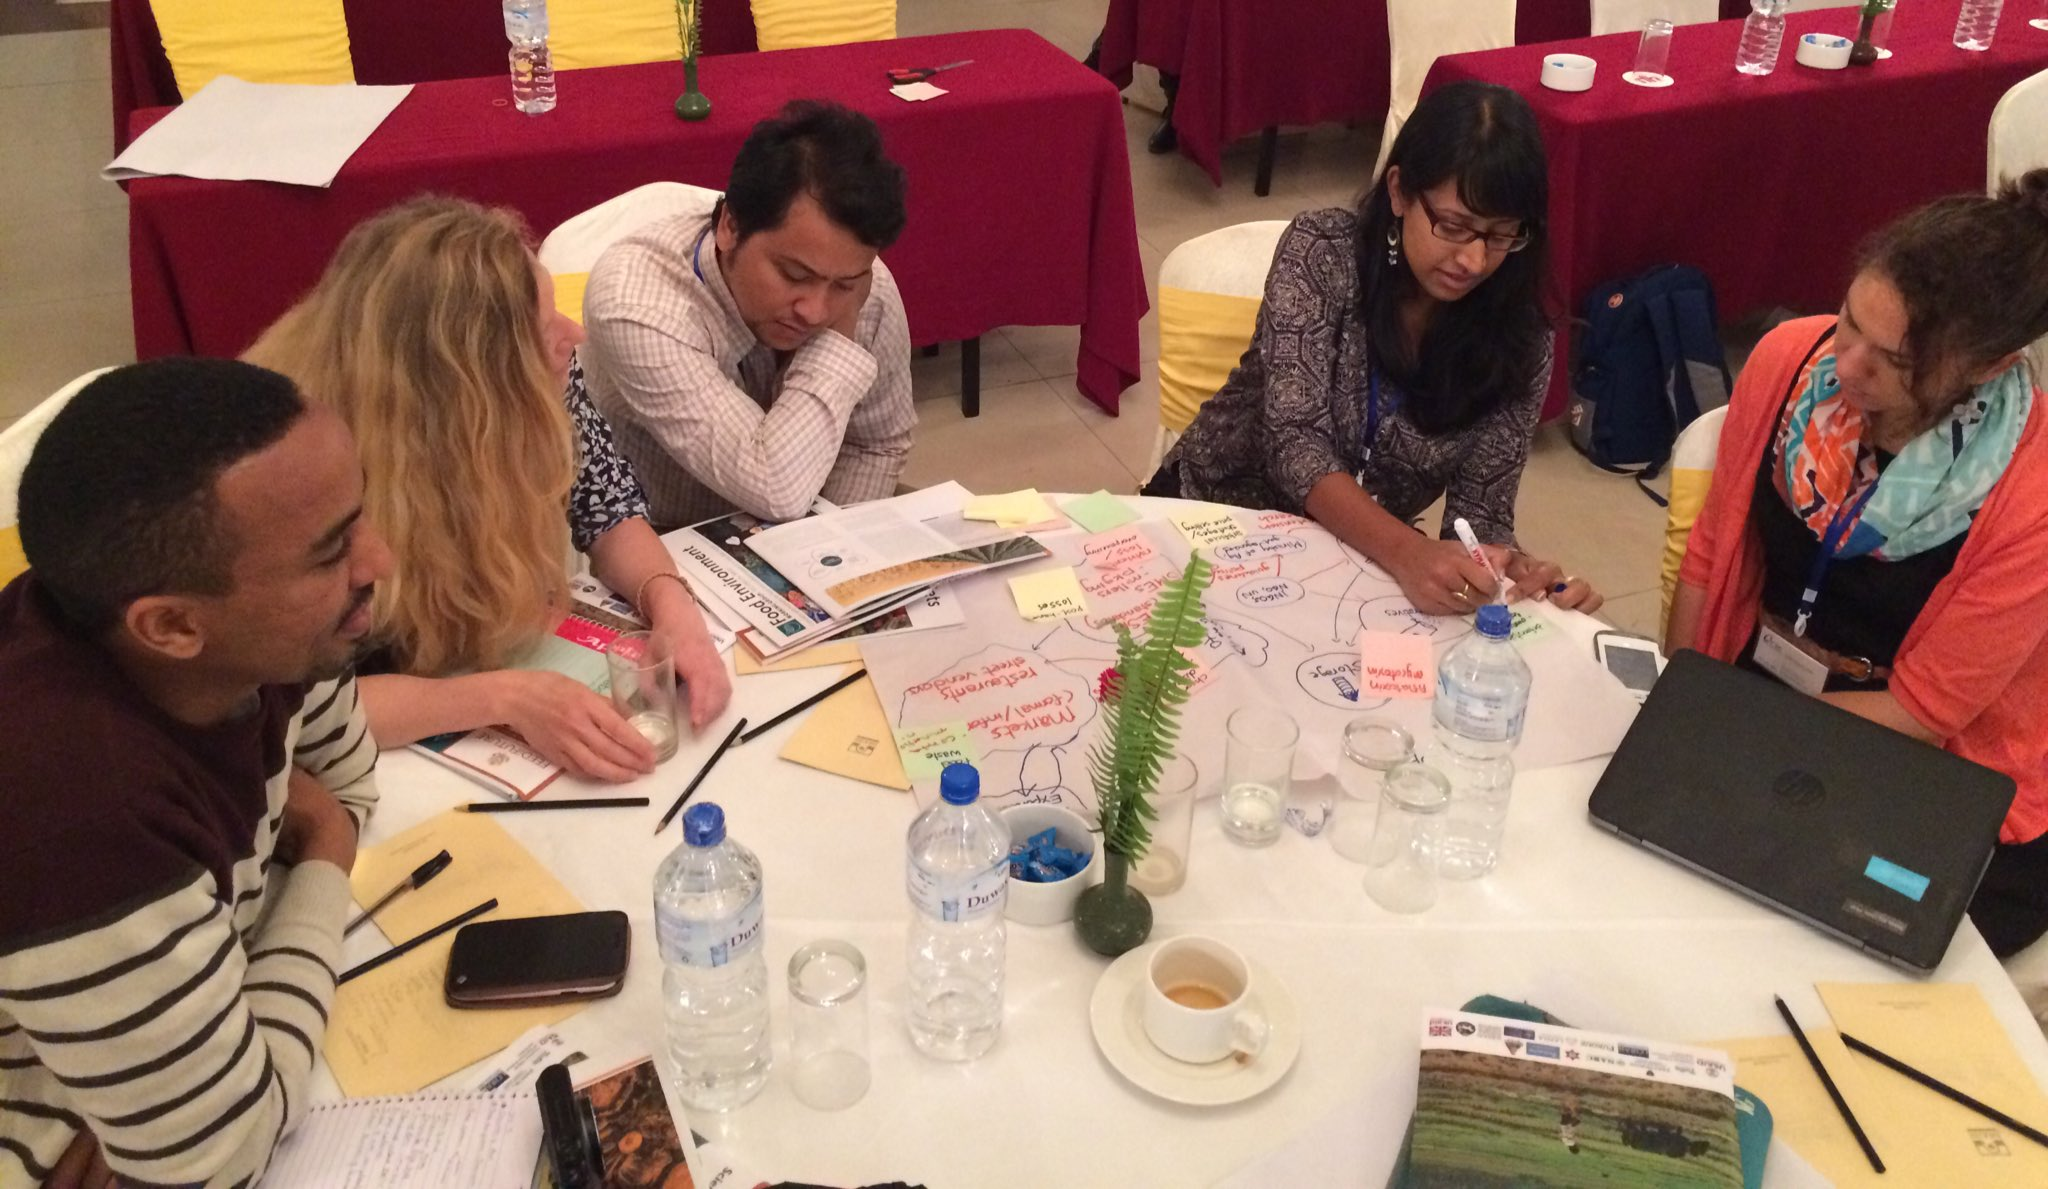 Mapping food system sustainability #ANH2017 #AgNutSympo https://t.co/IkzTkv7pOz